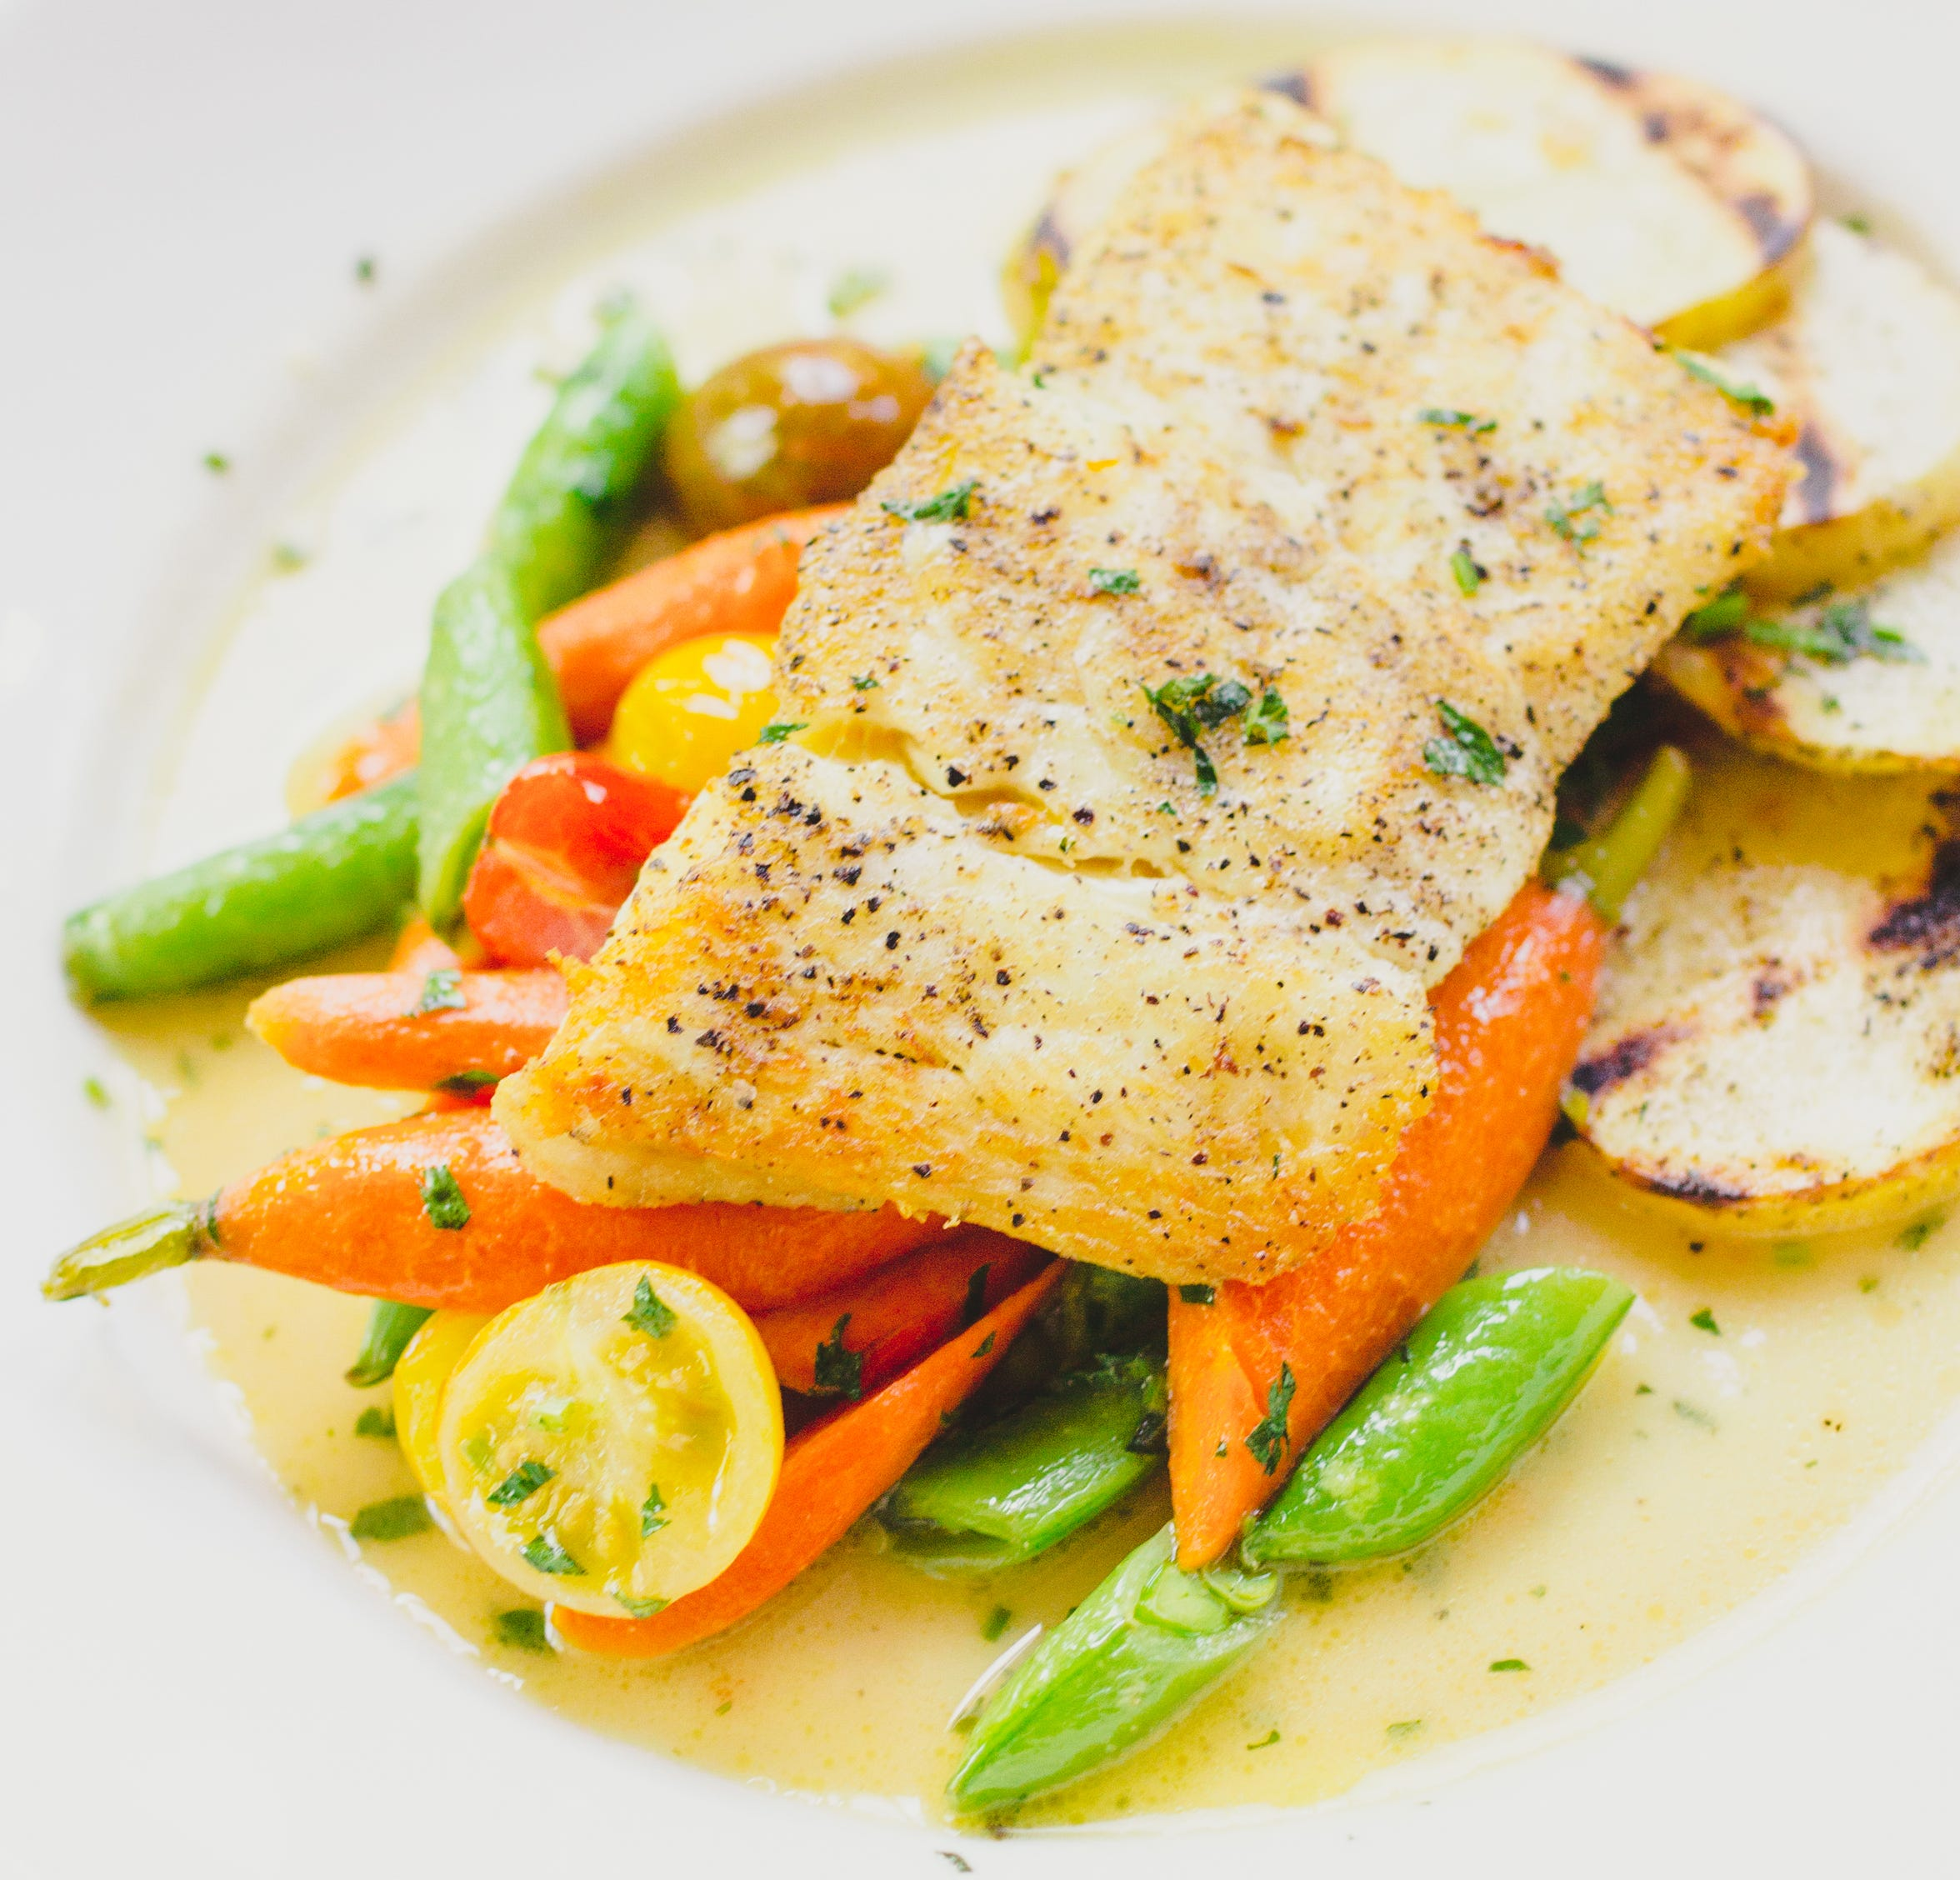 A colorful plating of halibut, baby carrots and snow peas at PlumpJack Cafe, the restaurant in PlumpJack Squaw Valley Inn in Squaw Valley, Calif., on Lake Tahoe's North Shore. The resort takes its name from a Shakespeare character.